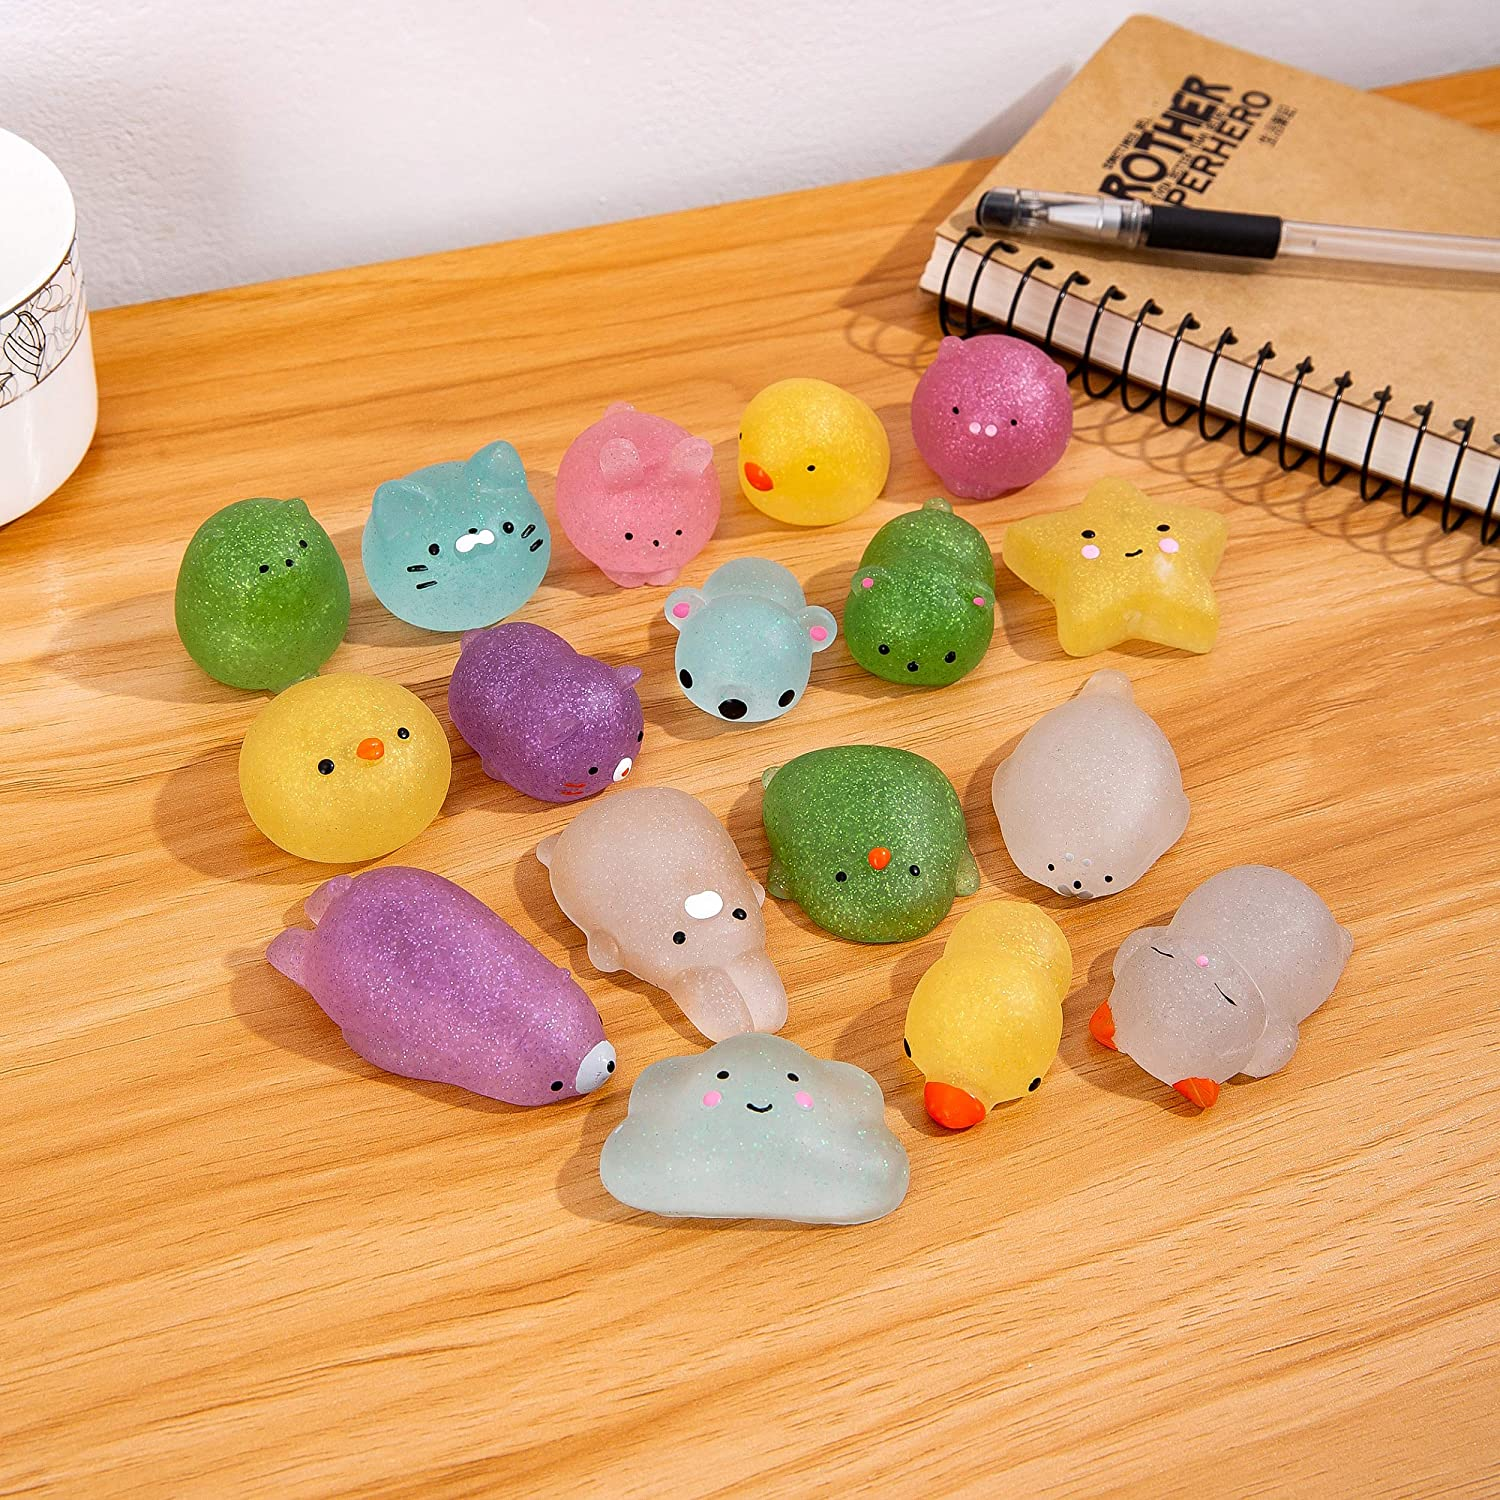 Office Toy Mochi Glitter Squishy Animal Toys Sensory Input Stress Relief and Concentration Calming Desk Accessories Autism Sensory Toys Christmas Stocking Stuffers